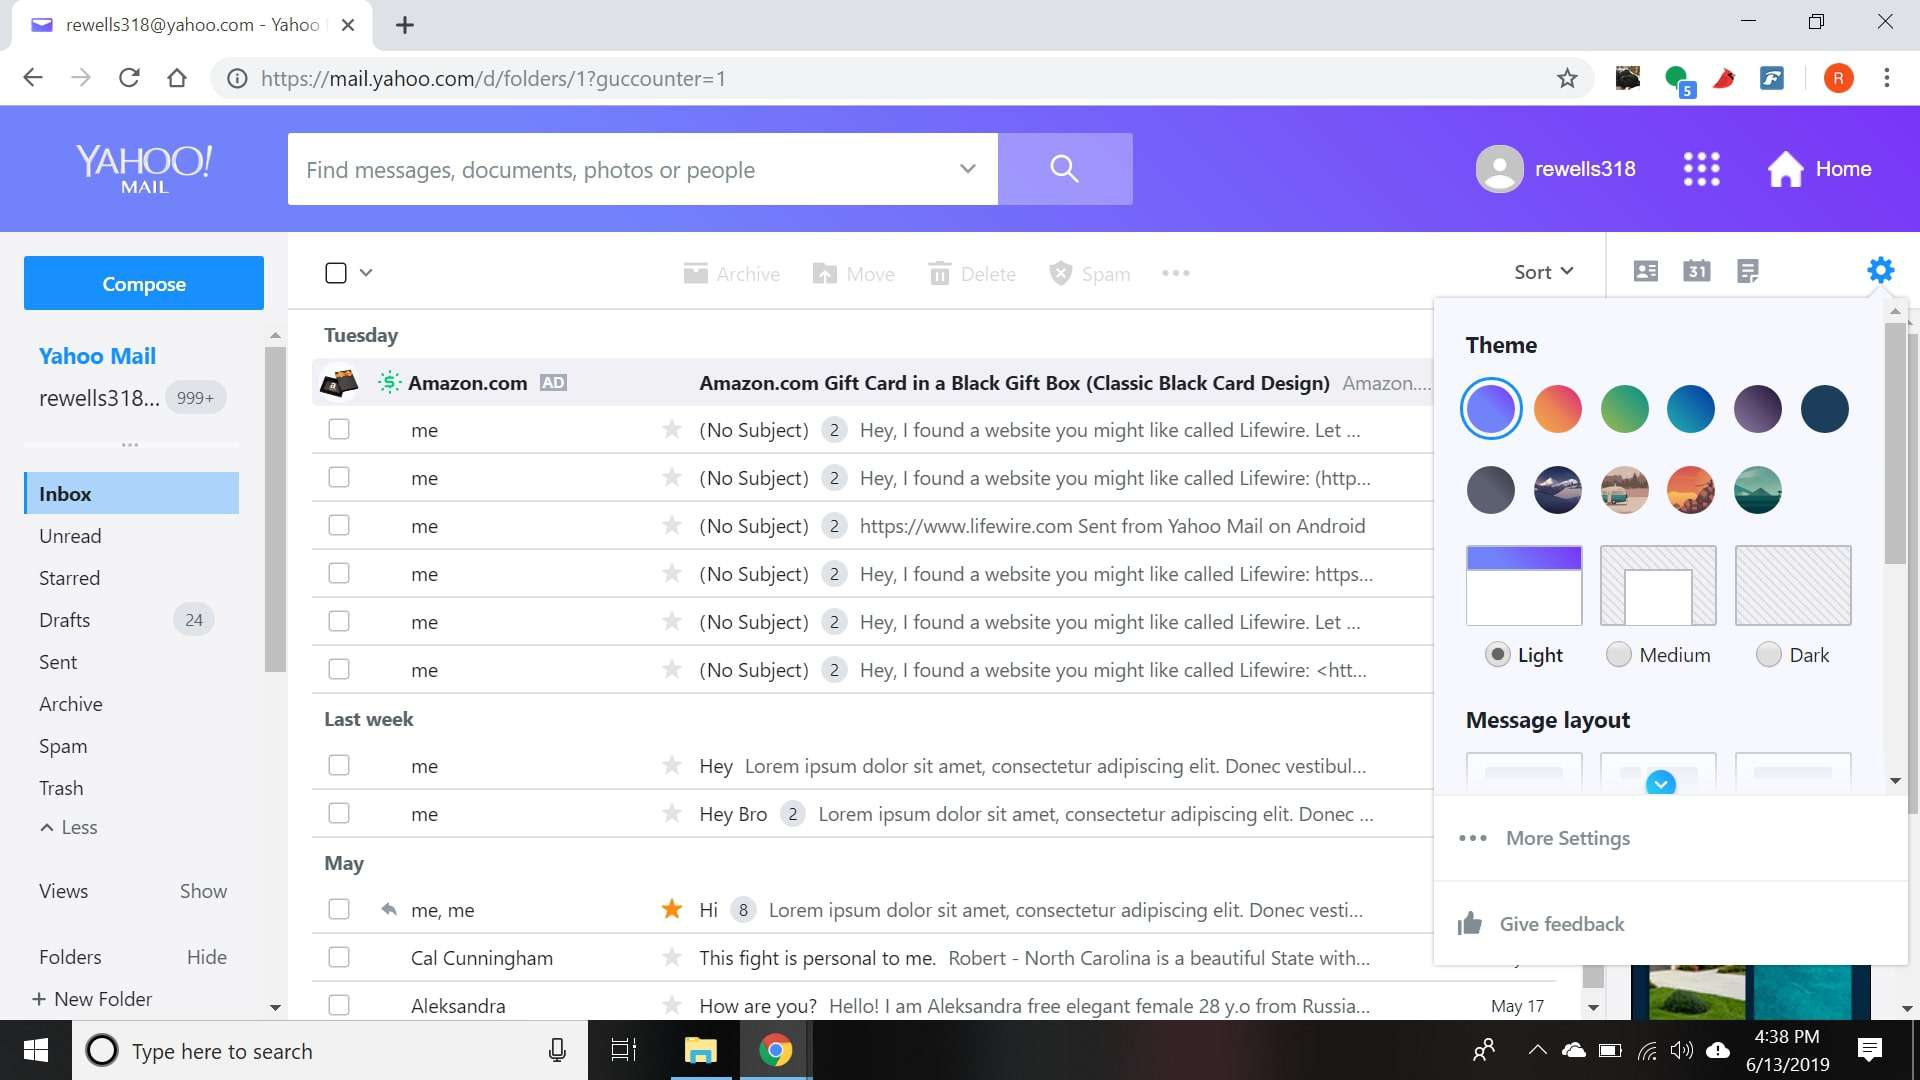 How to Check Other Email Accounts Through Yahoo Mail